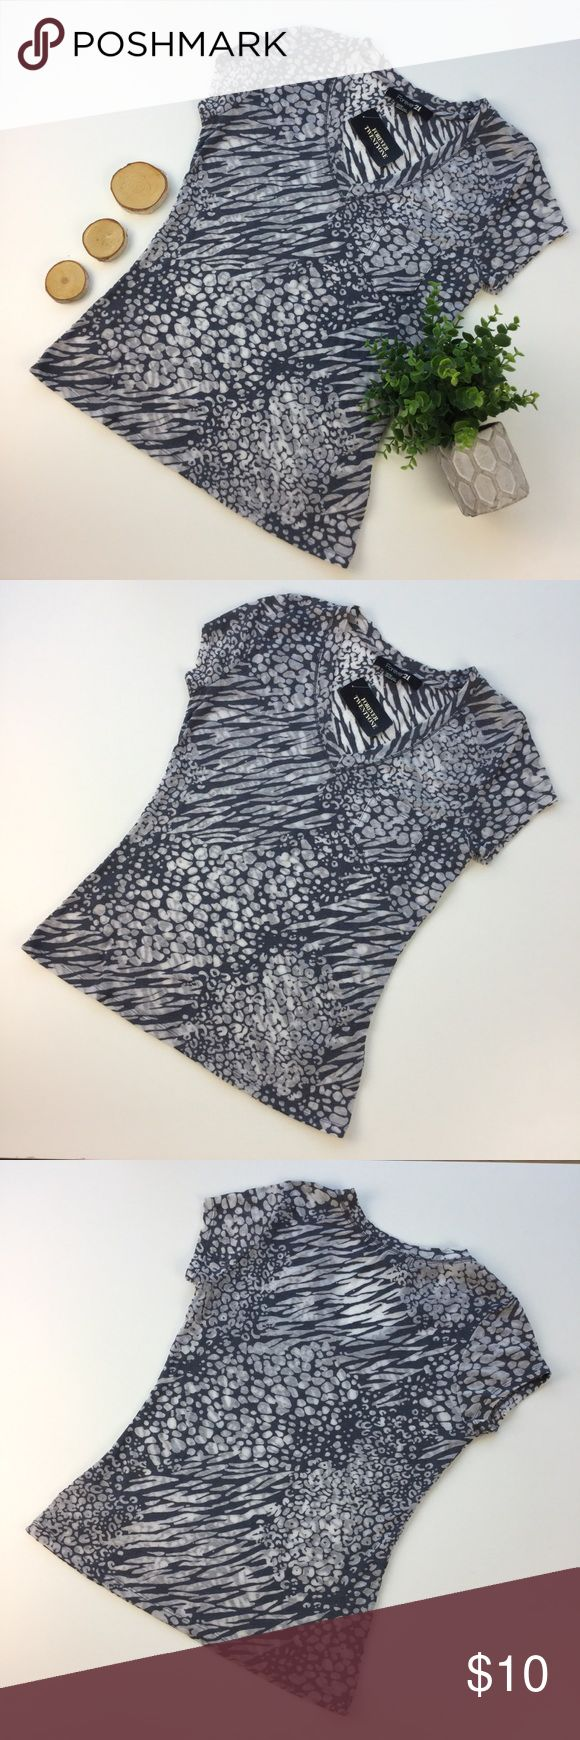 """Forever 21 Grey NWT Animal Print Short Sleeve M Forever 21 Grey & White Animal Print Short Sleeve 57% Polyester 43% Cotton NWT.   Super cute and comfy. Semi-sheer, Slubknit. Size M.  Underarm to underarm: 16""""   Length, shoulder seam to bottom hem: 23.5""""  Inventory: A2 Forever 21 Tops Tees - Short Sleeve"""